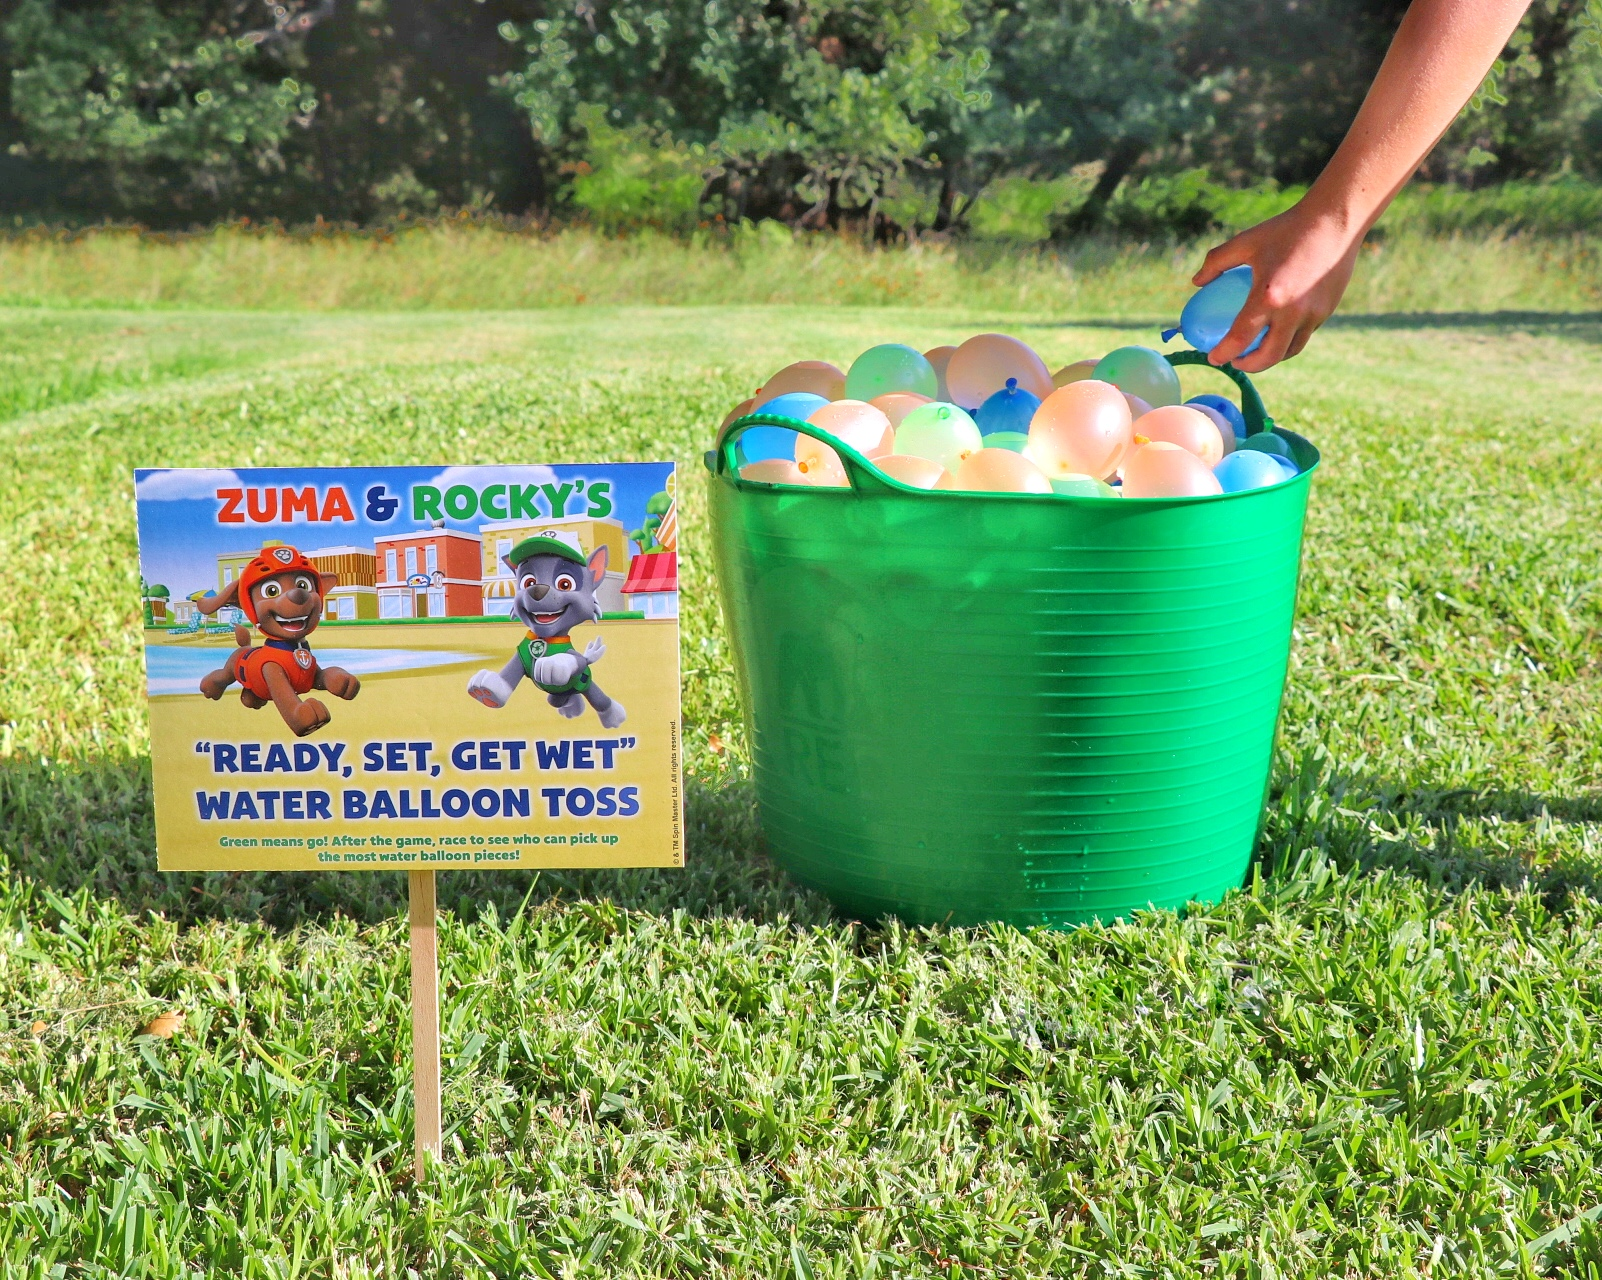 """PAW Patrol birthday party games: Zuma and Rocky's """"Ready, Set, Get Wet"""" Water Balloon Toss Game"""